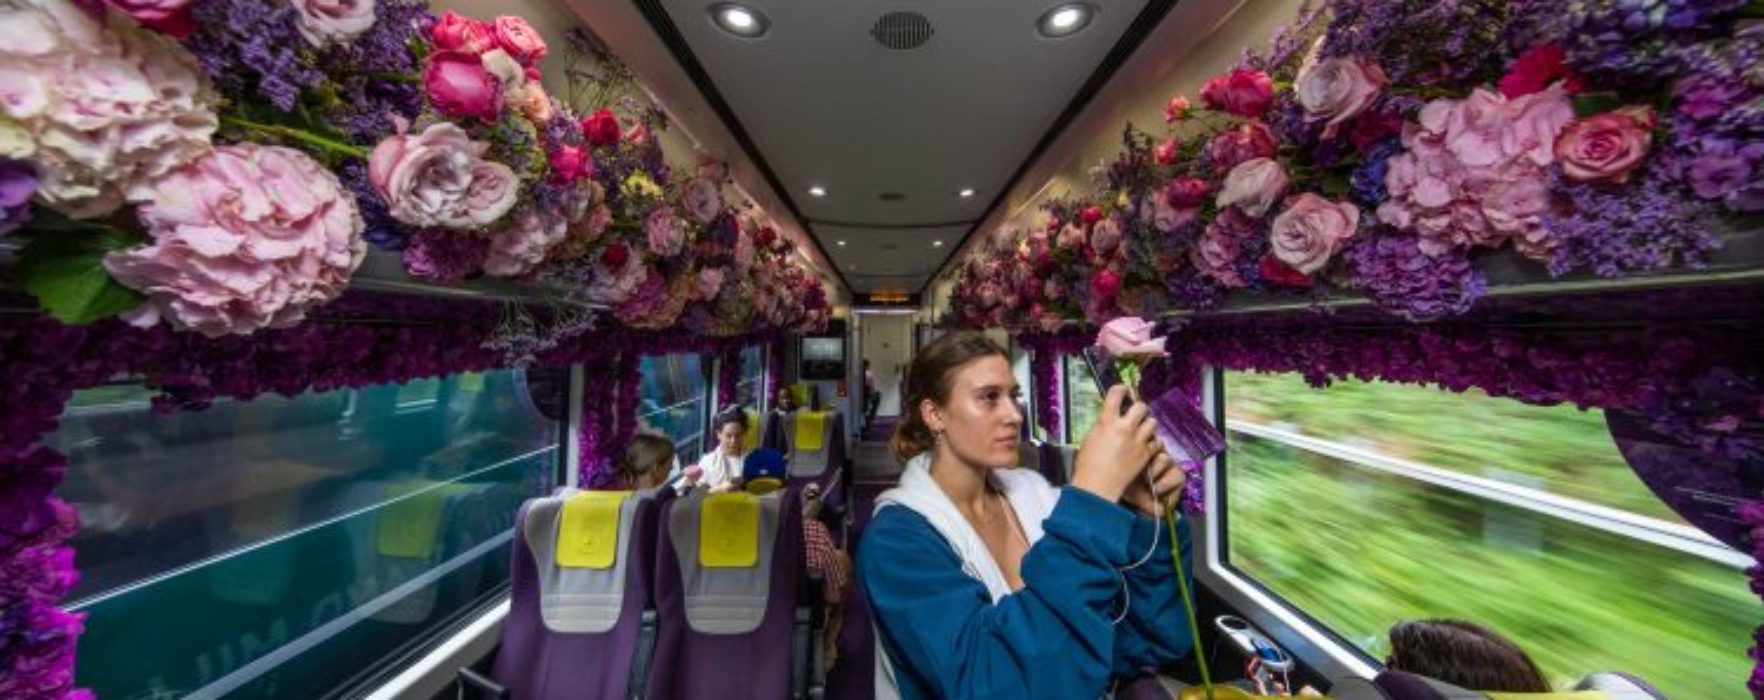 WATCH: Is this the fuchsia of travel?